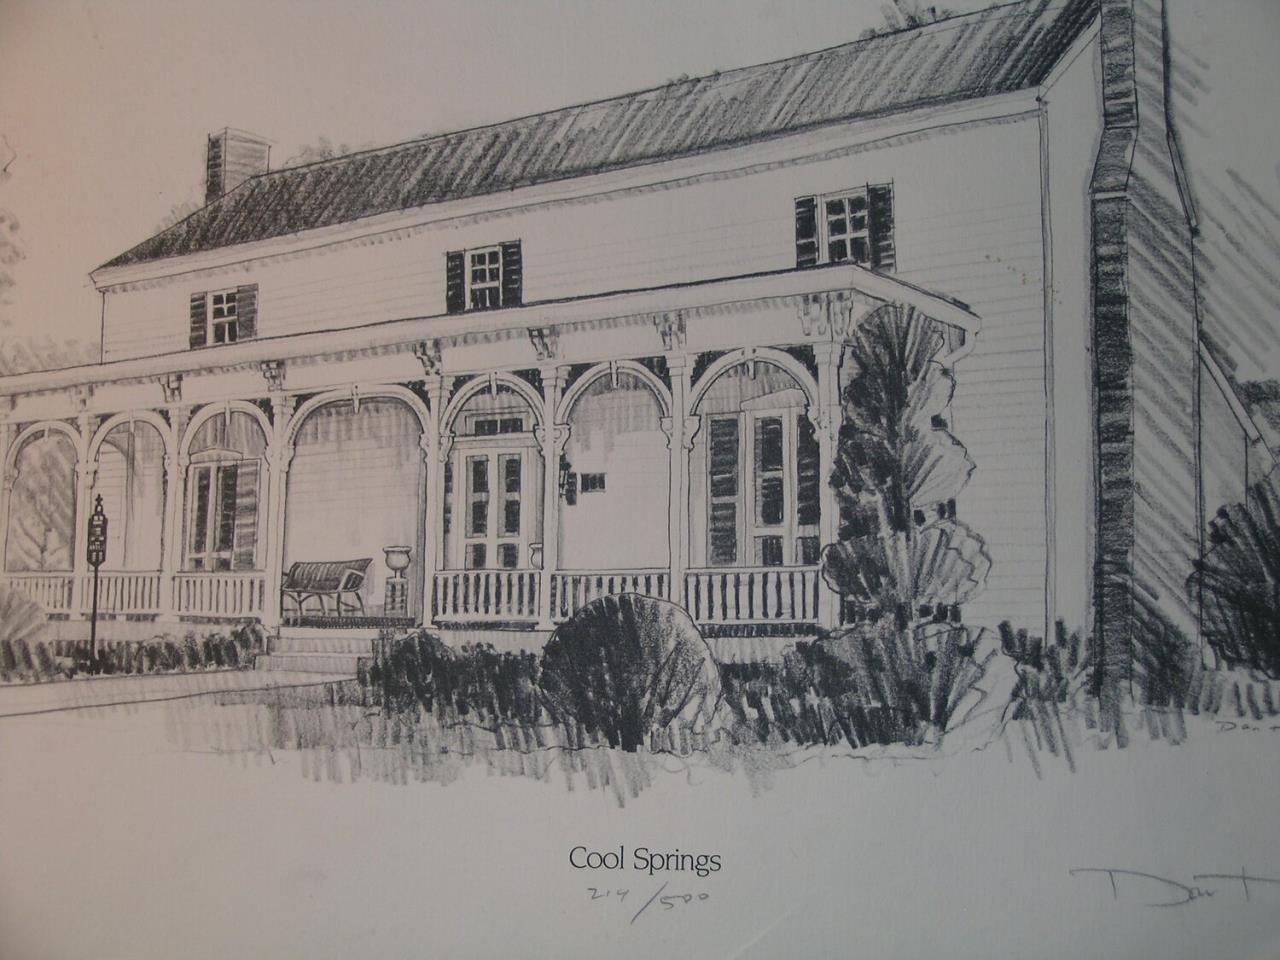 COOL SPRINGS HOUSE DRAWING